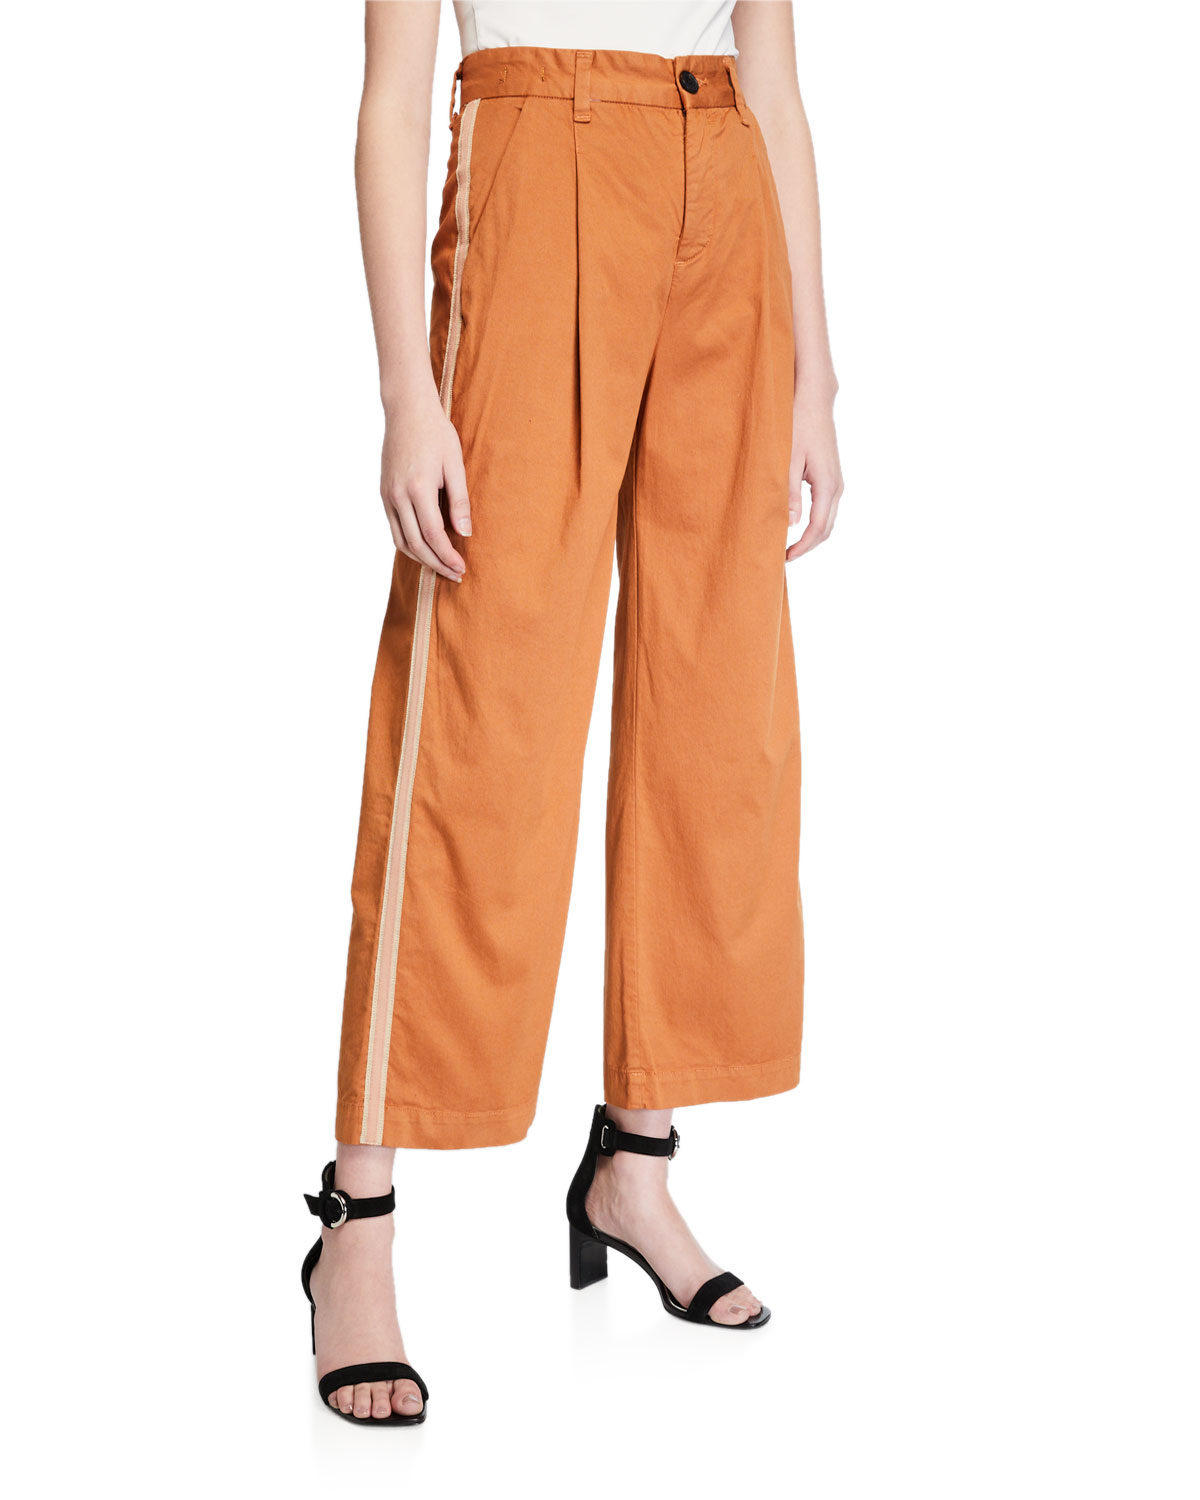 Veronica Beard Pants RYDER PLEAT FRONT PANT W TUX